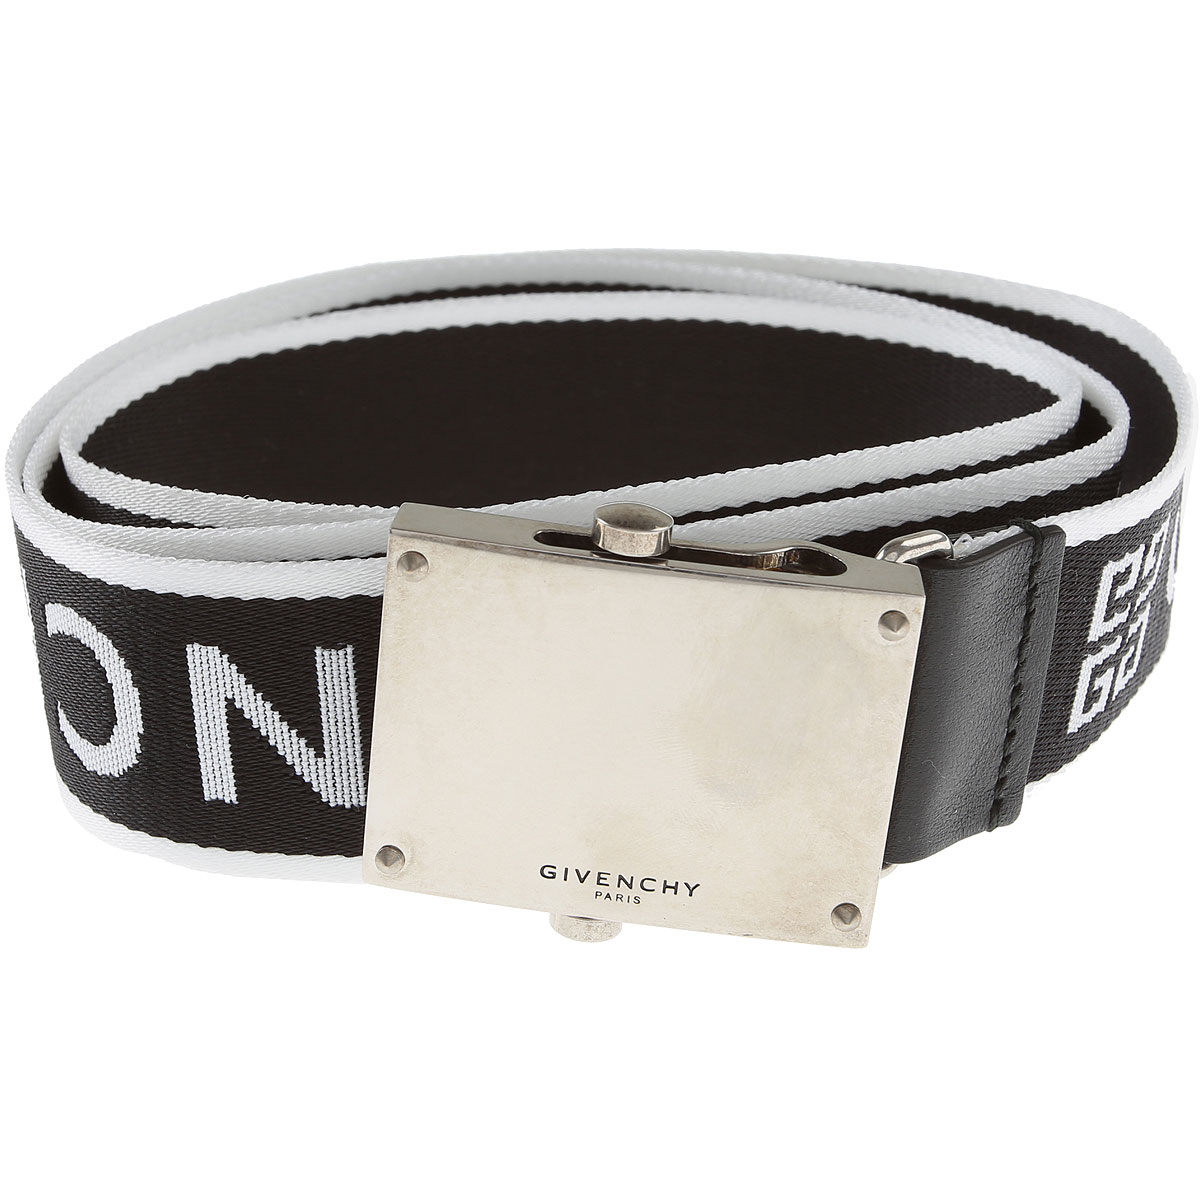 c6a81cce4e320 Mens Belts Givenchy, Style code: bk400sk0bq-004-